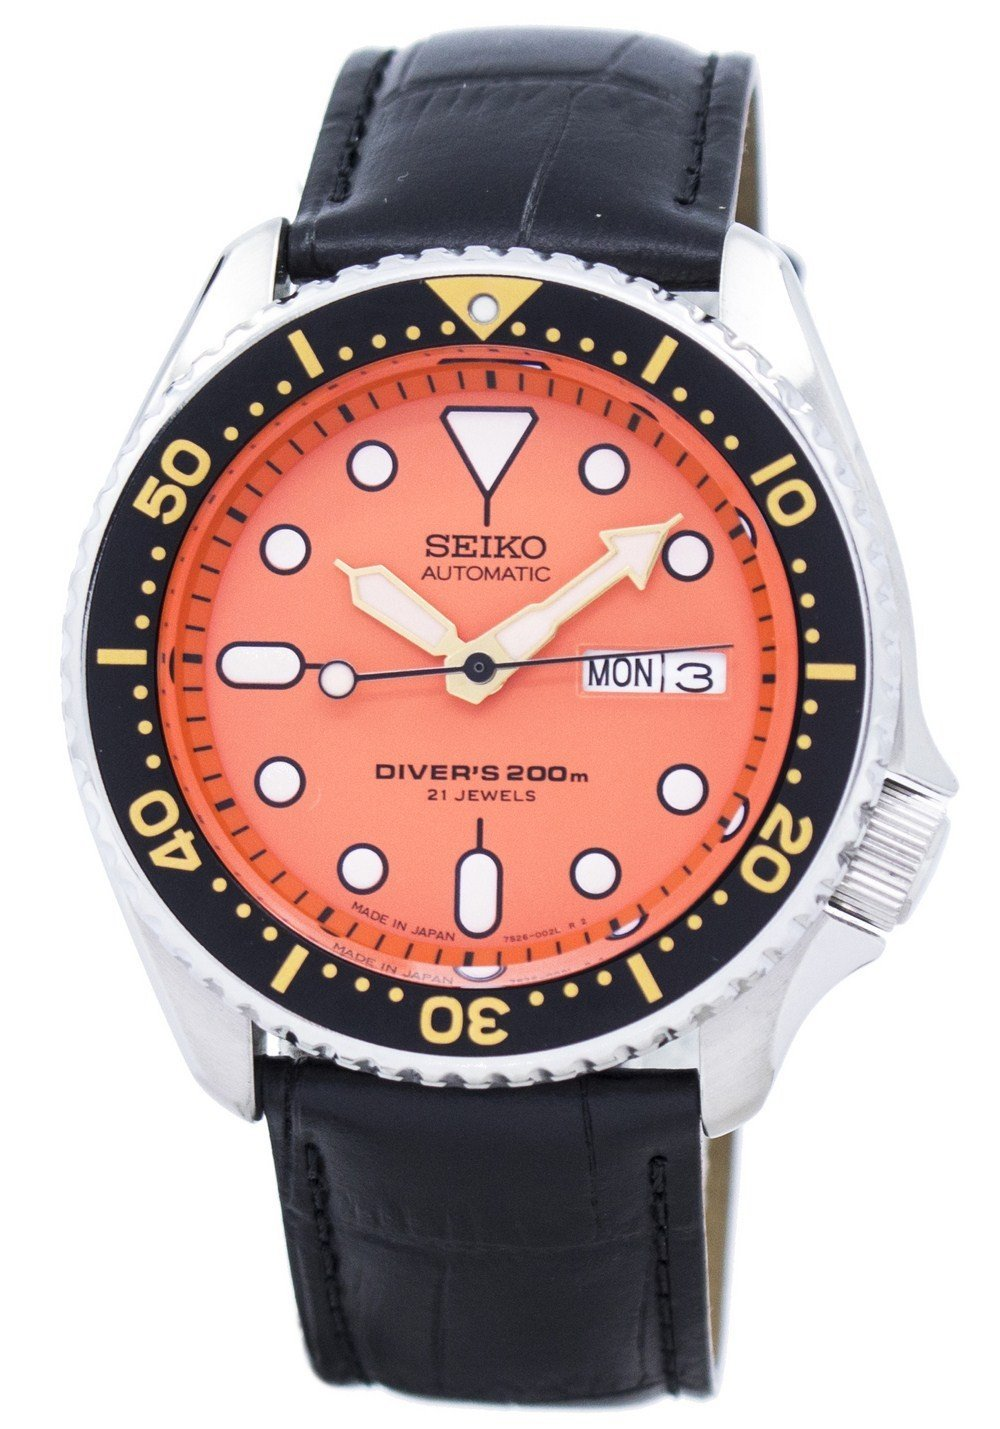 Seiko Automatic Diver's Ratio Black Leather SKX011J1-LS6 200M Men's Watch